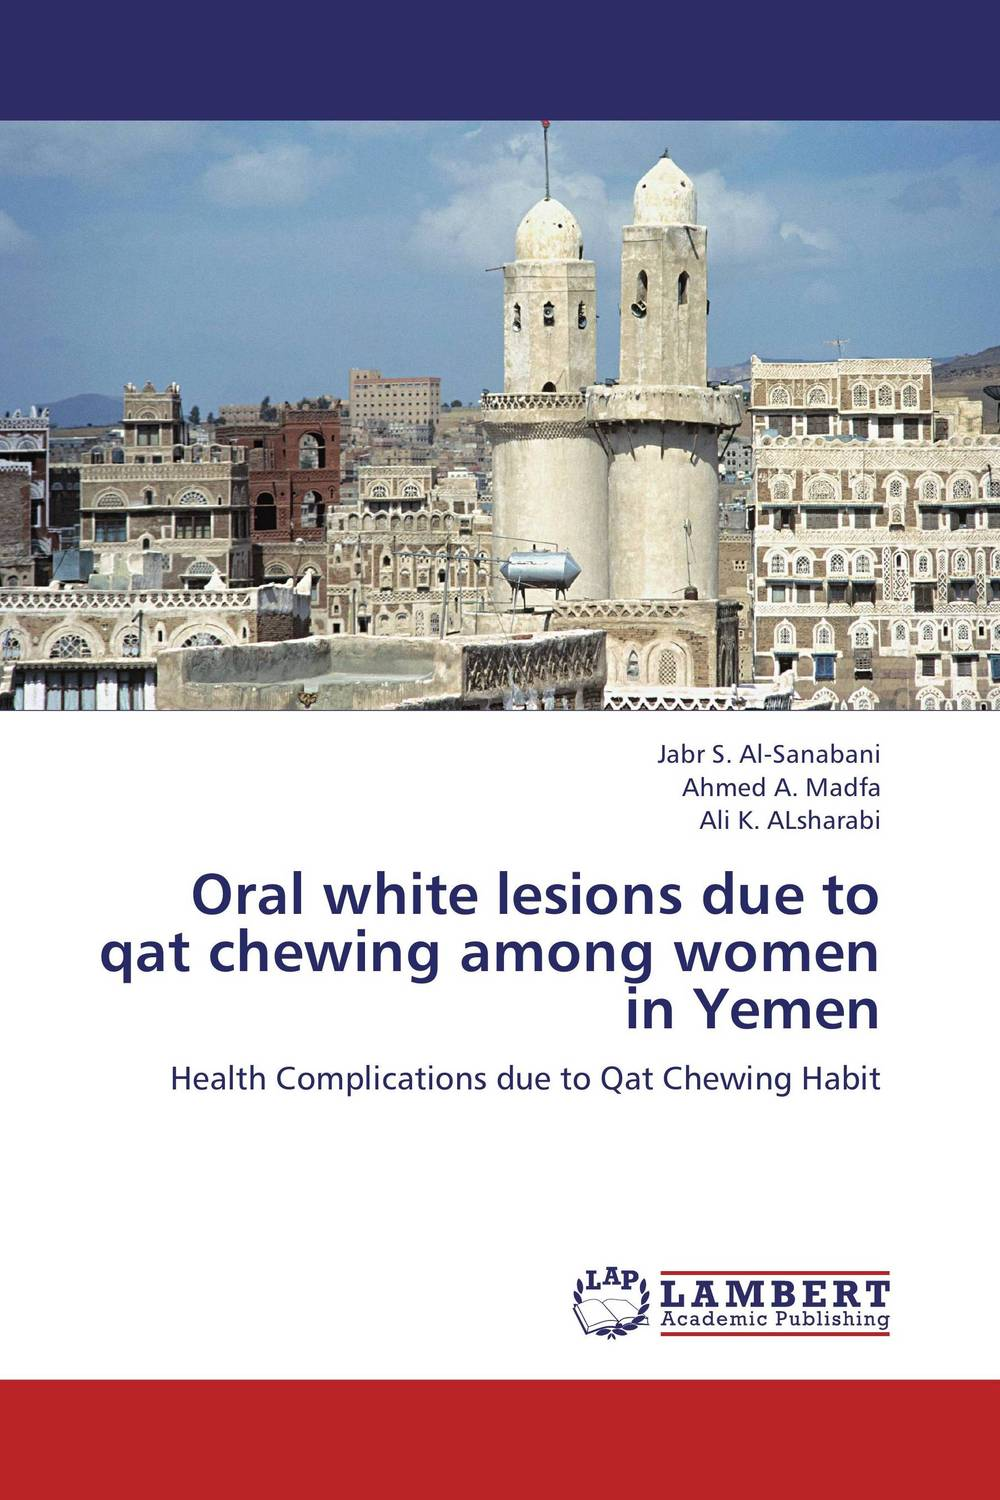 Oral white lesions due to qat chewing among women in Yemen assessment of oral pre cancer and cancerous lesions in gujarat state